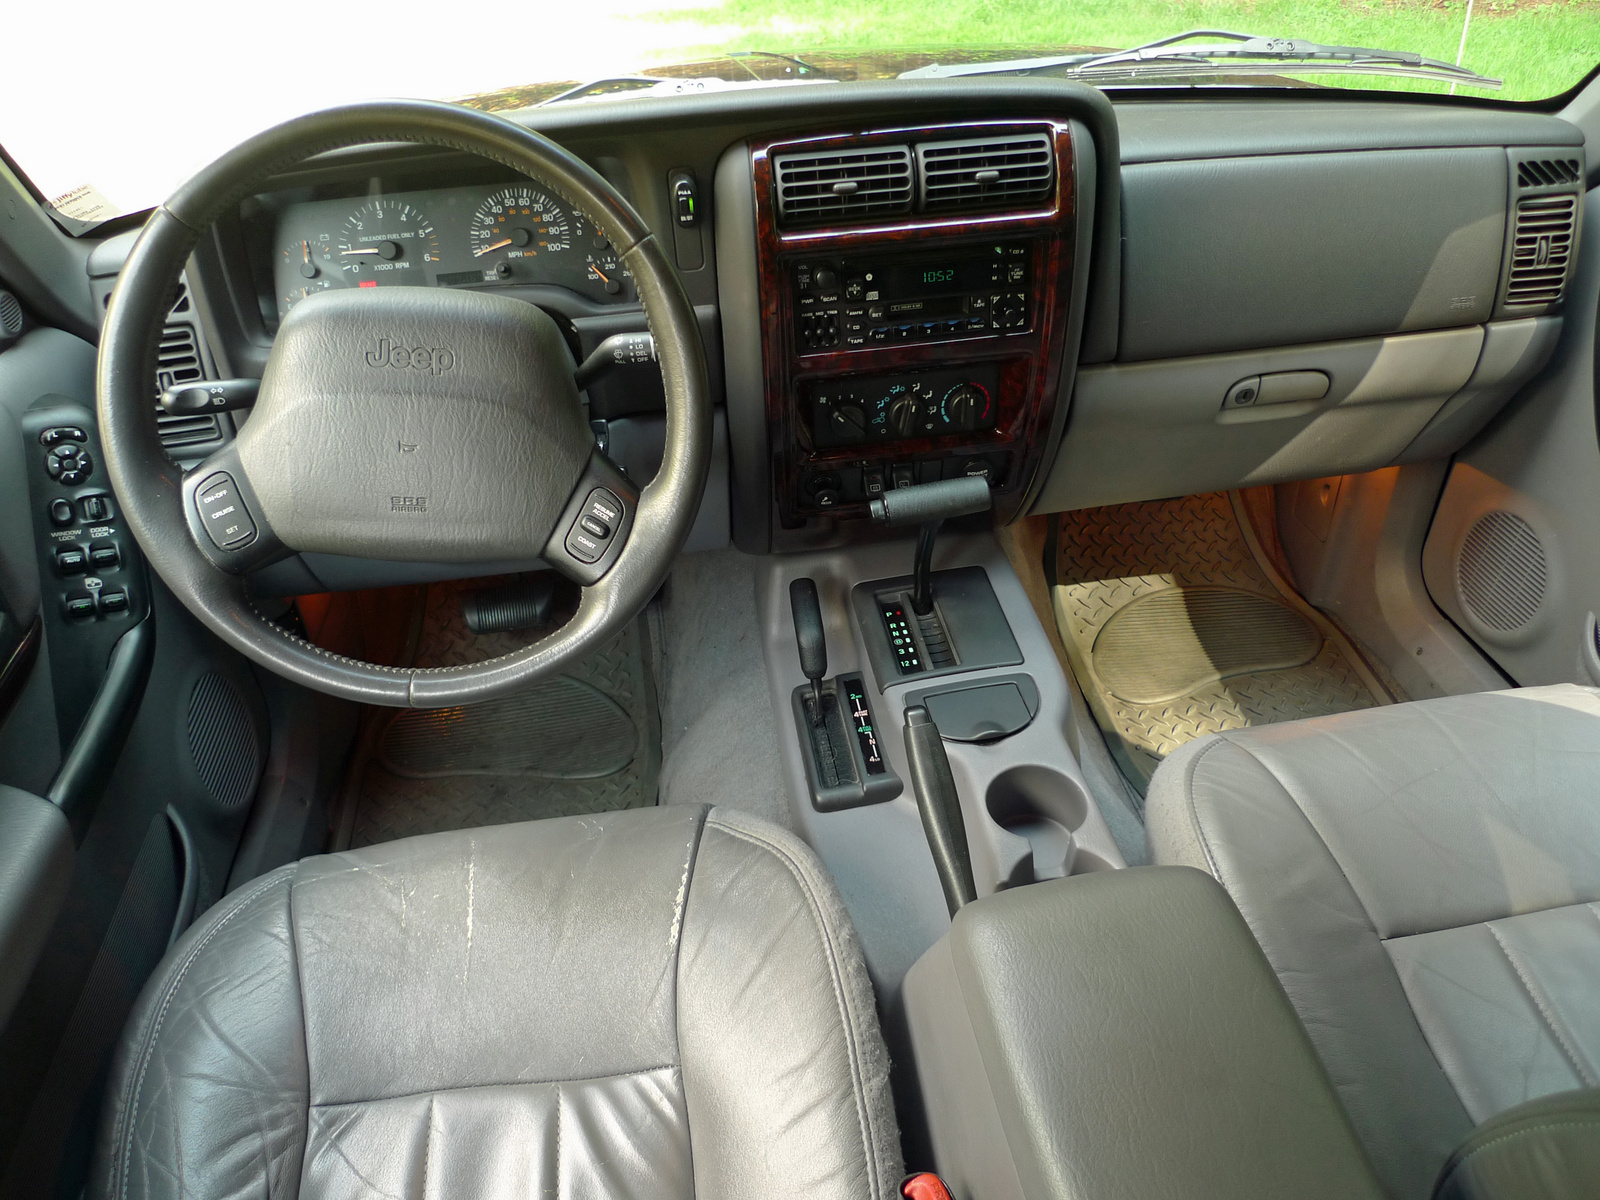 1998 jeep cherokee pictures cargurus for 1998 jeep grand cherokee interior